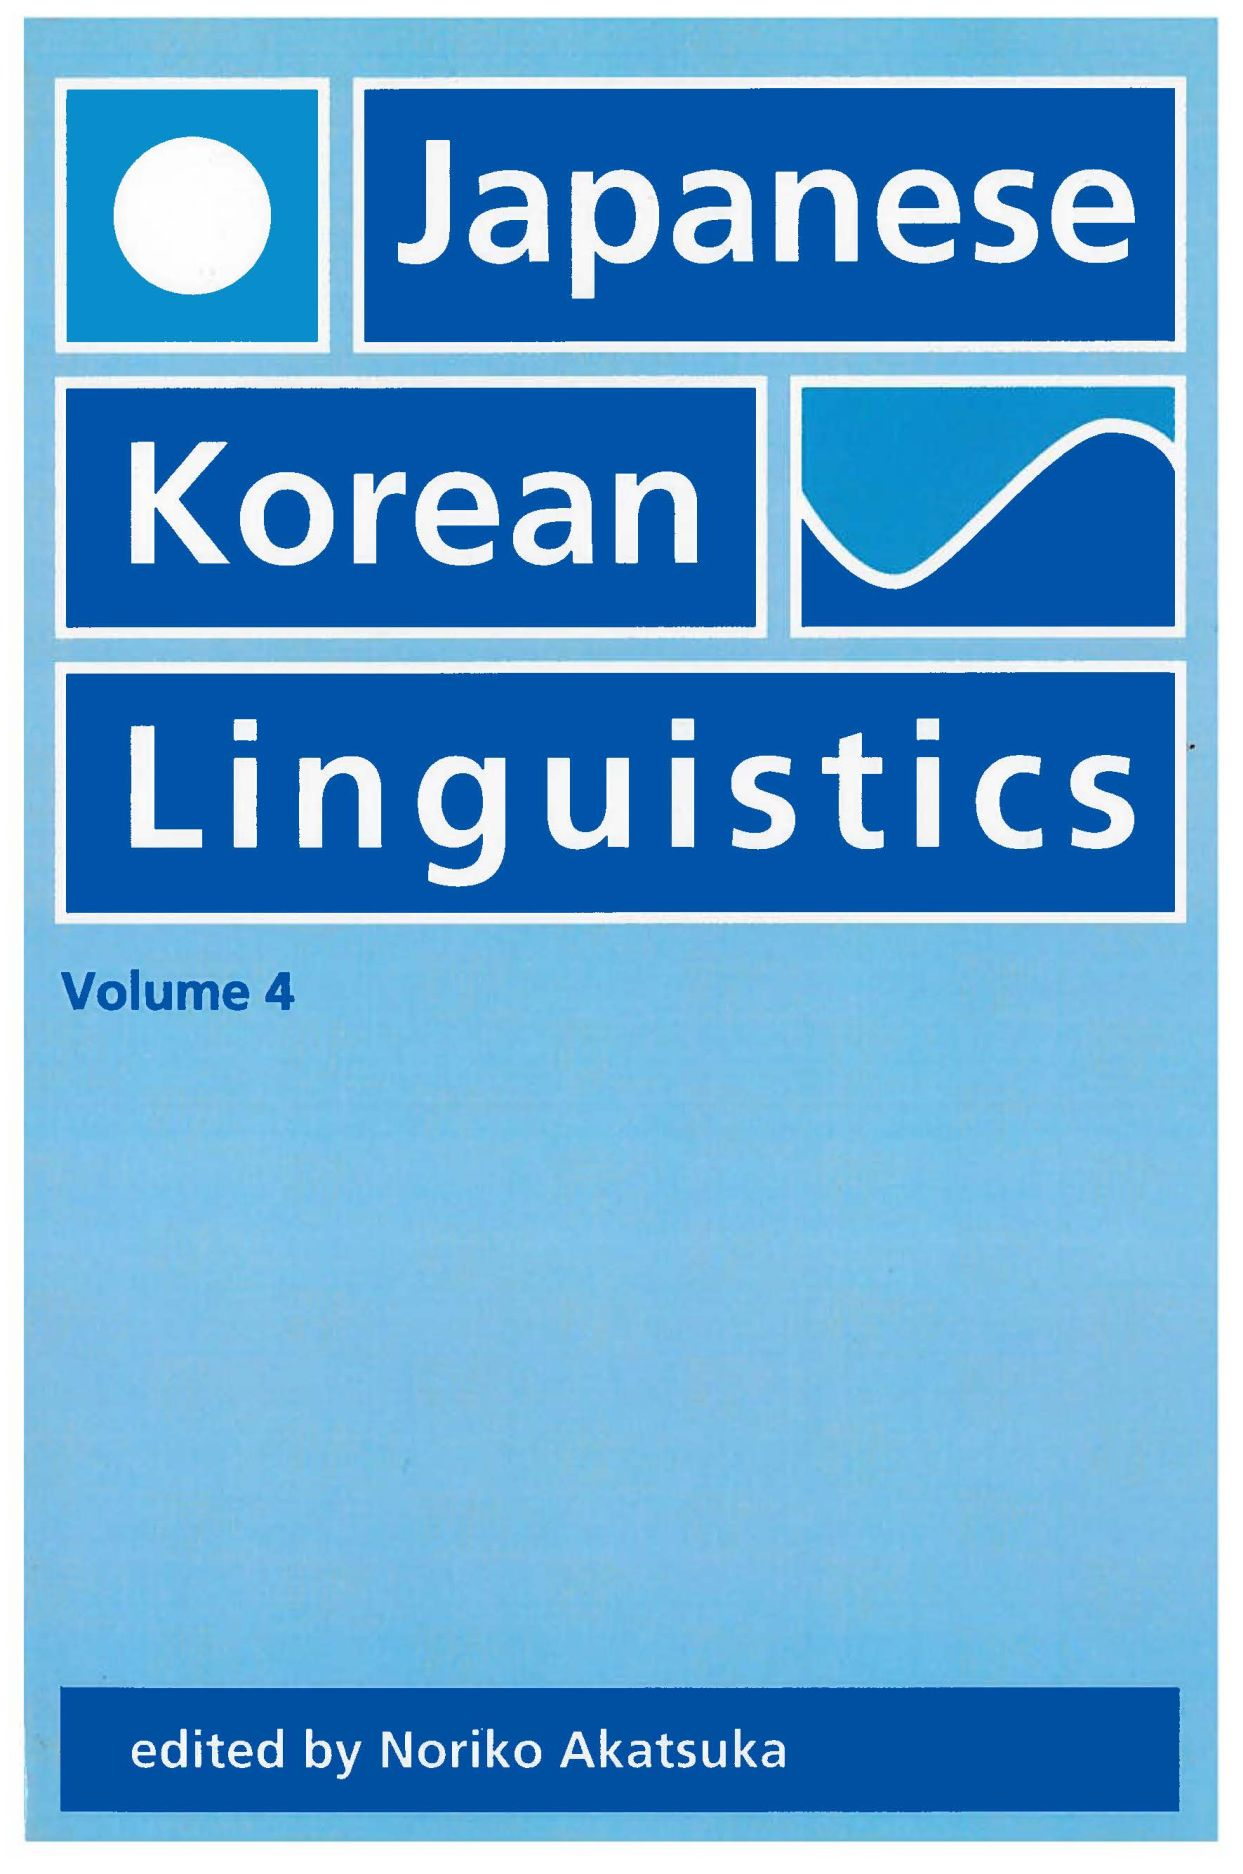 Japanese/Korean Linguistics, Volume 4